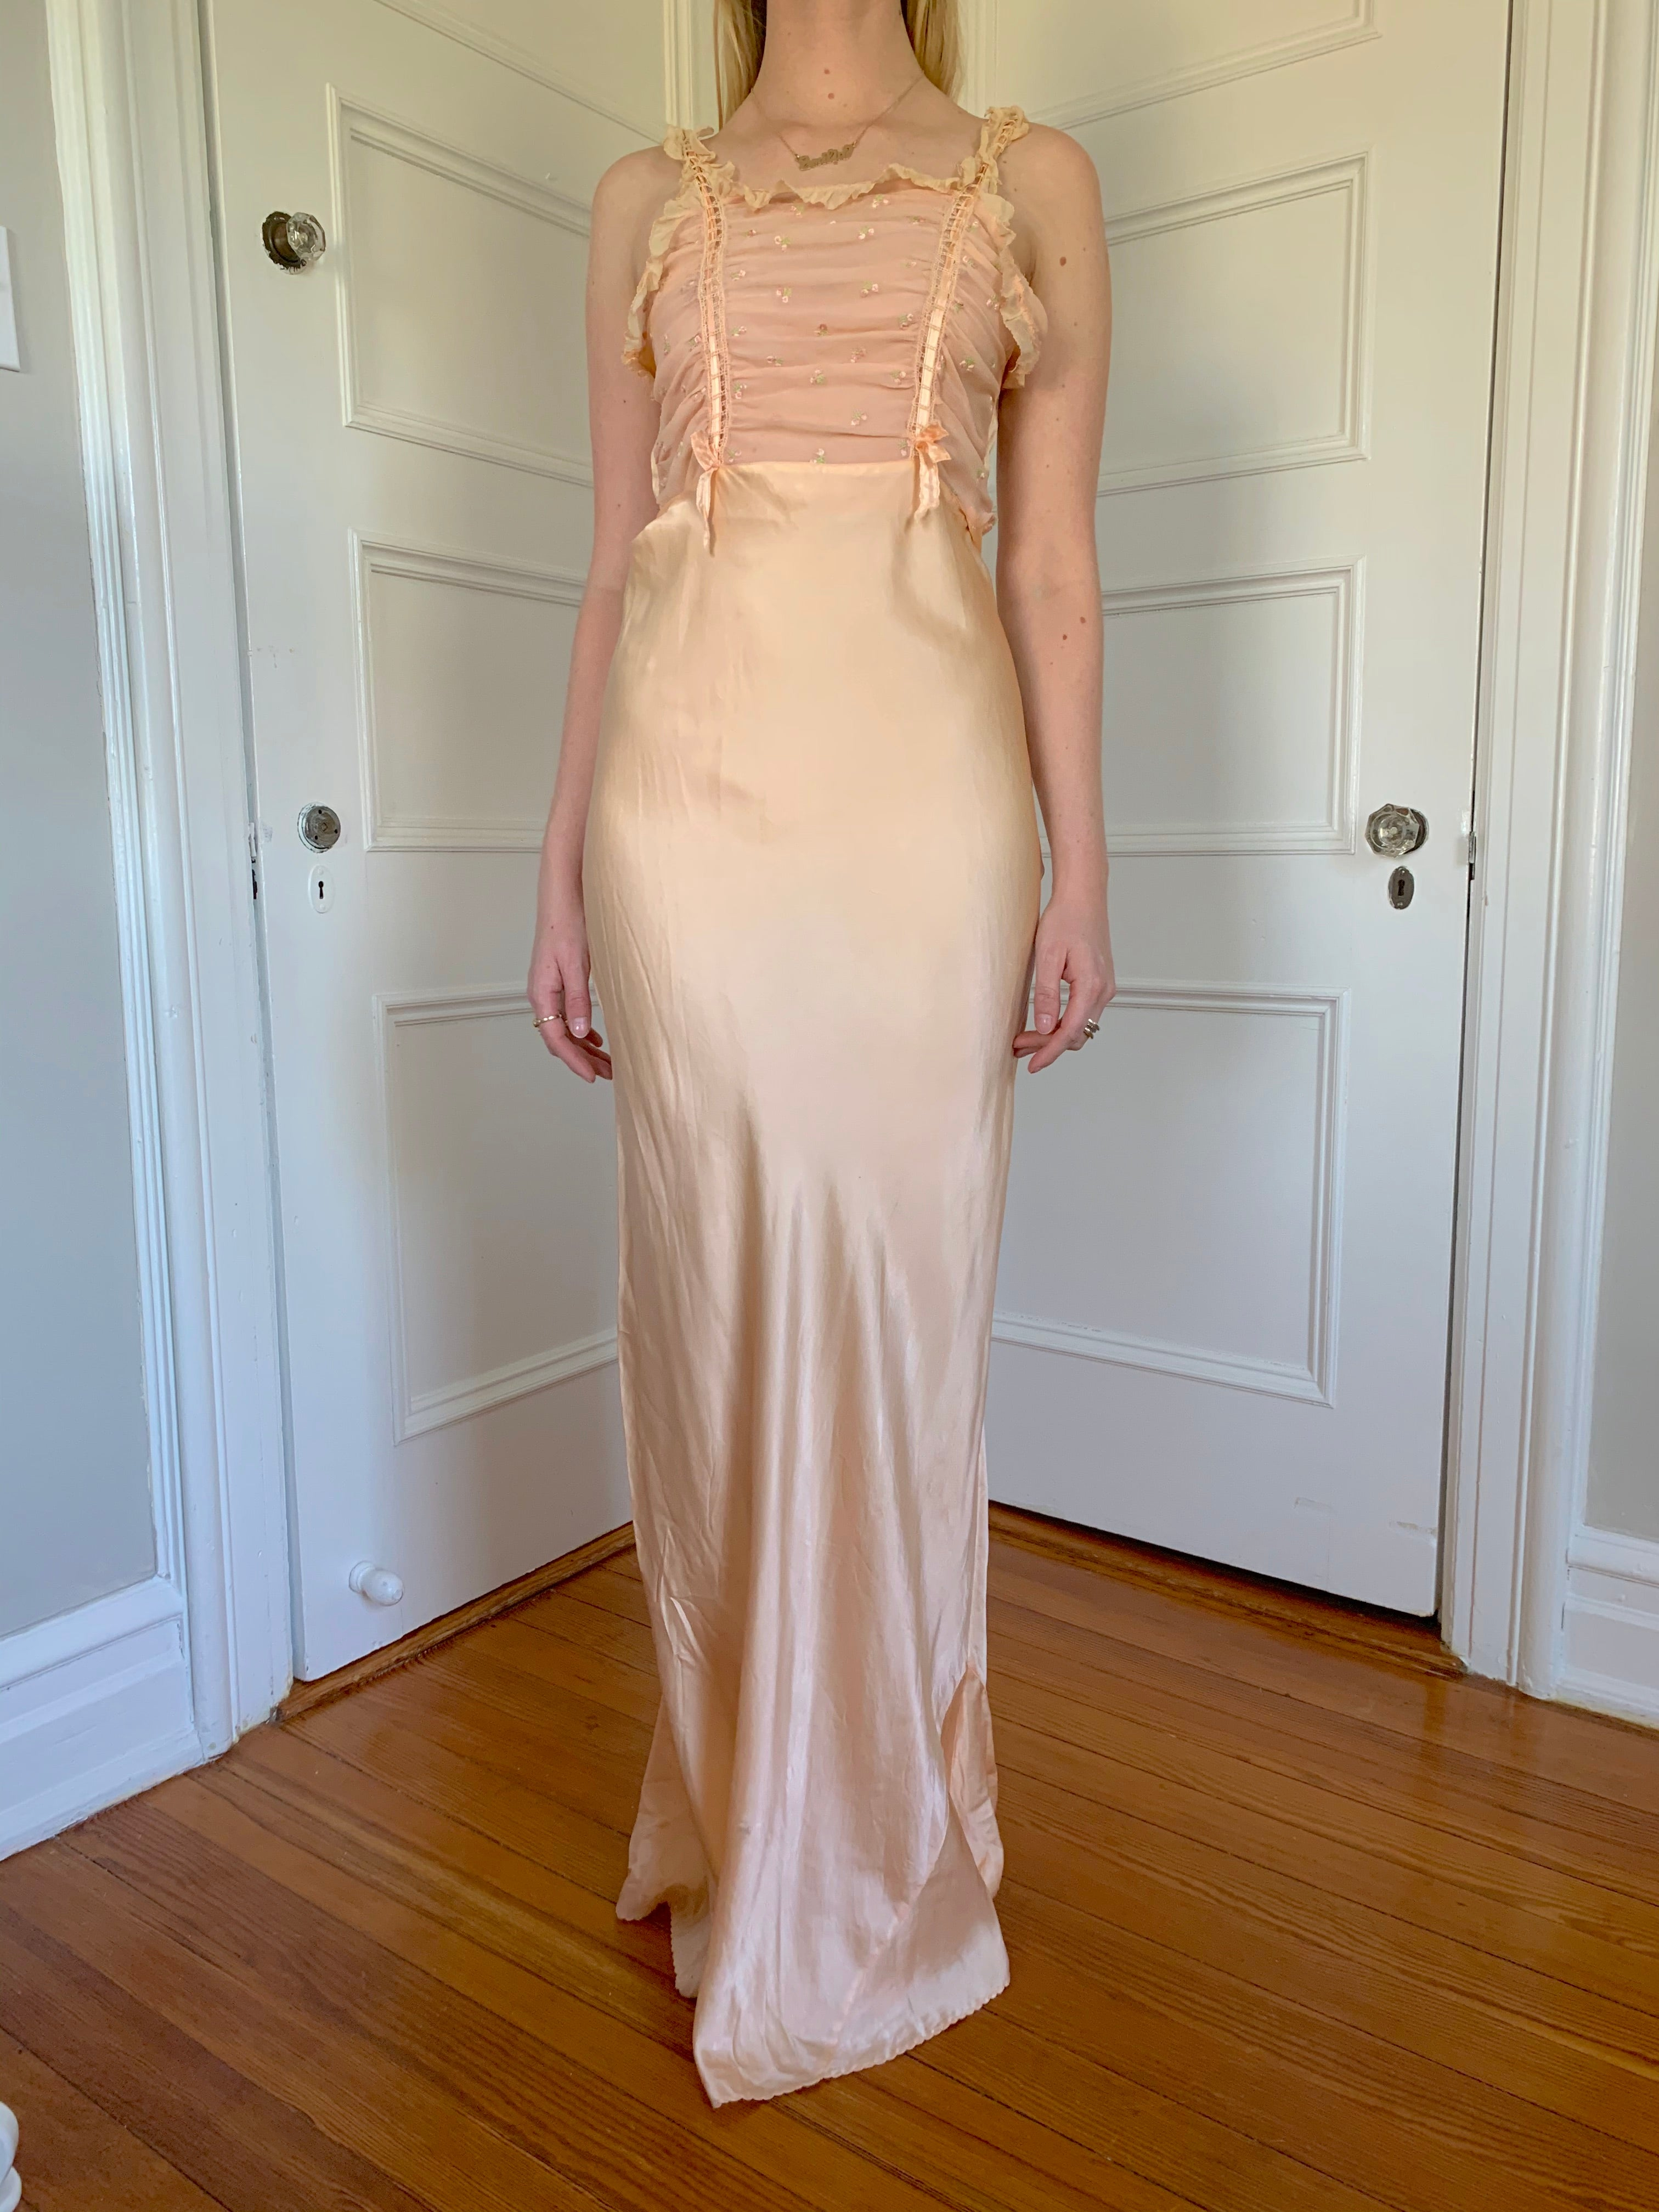 Peach Silk Slip with Chiffon Bust, Ribbons, and Floral Embroidery